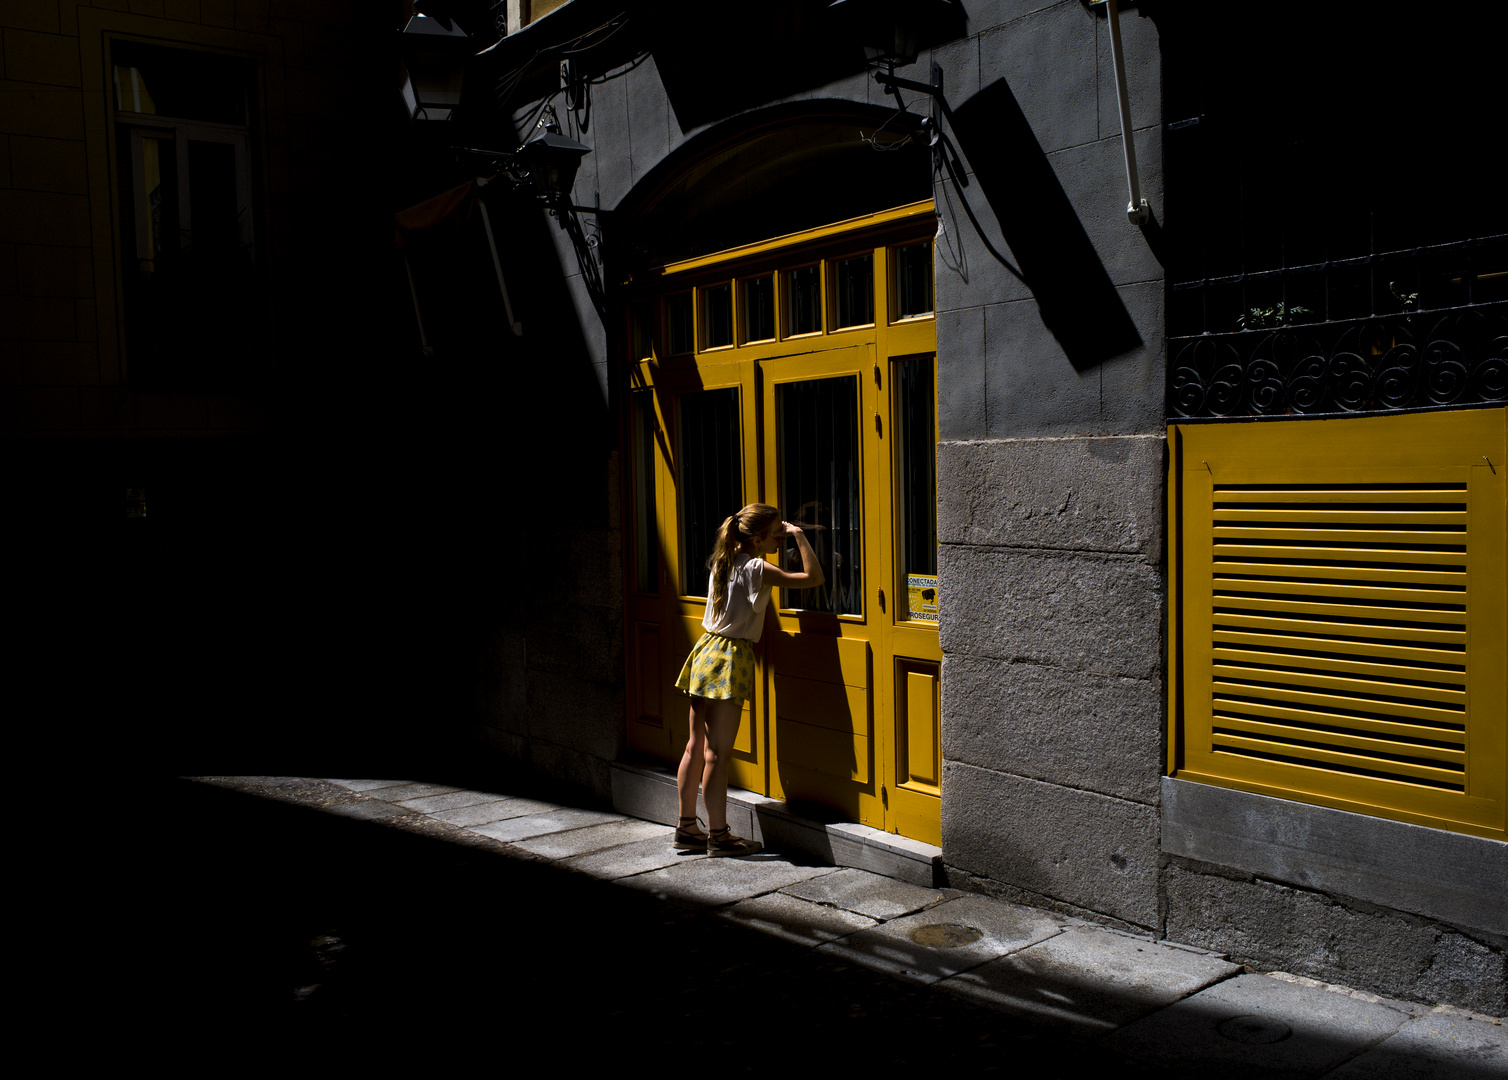 The girl with the yellow skirt.